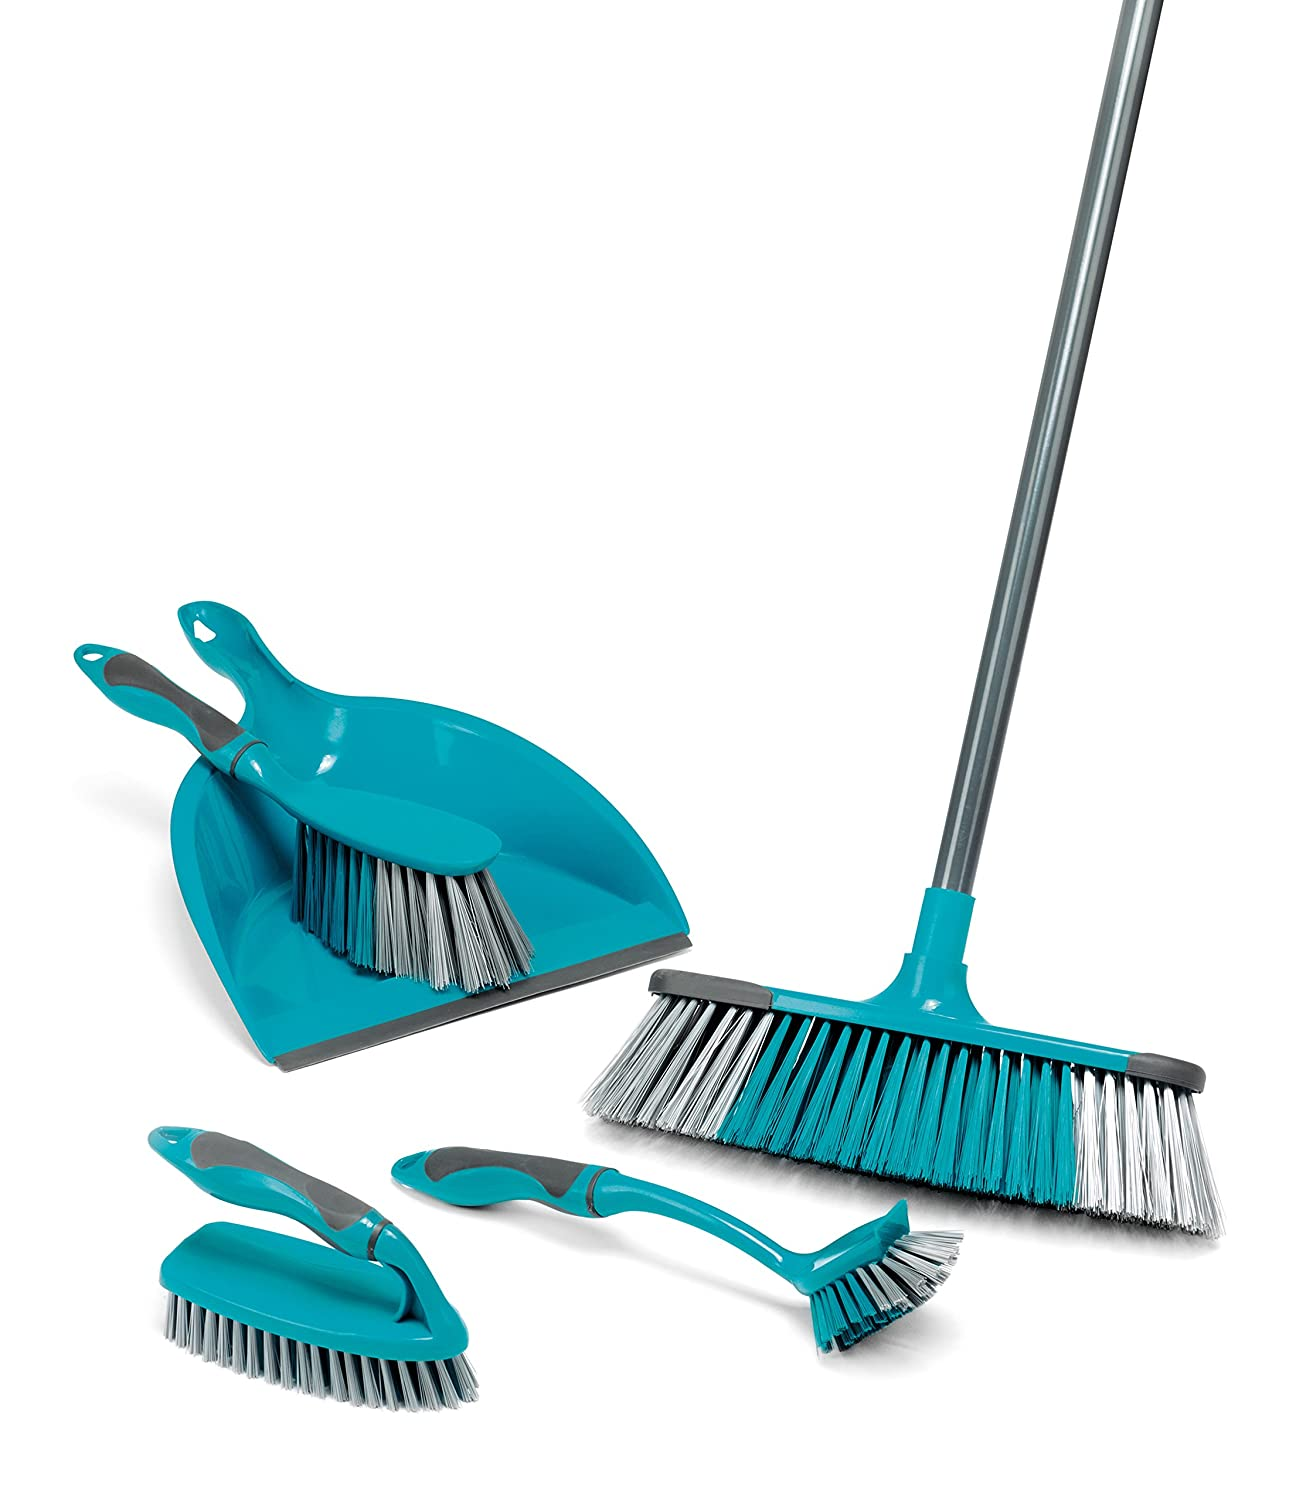 Beldray LA024152 Turquoise 5 Piece Cleaning Set, 9 x 29 x 33 cm LA024152TQ